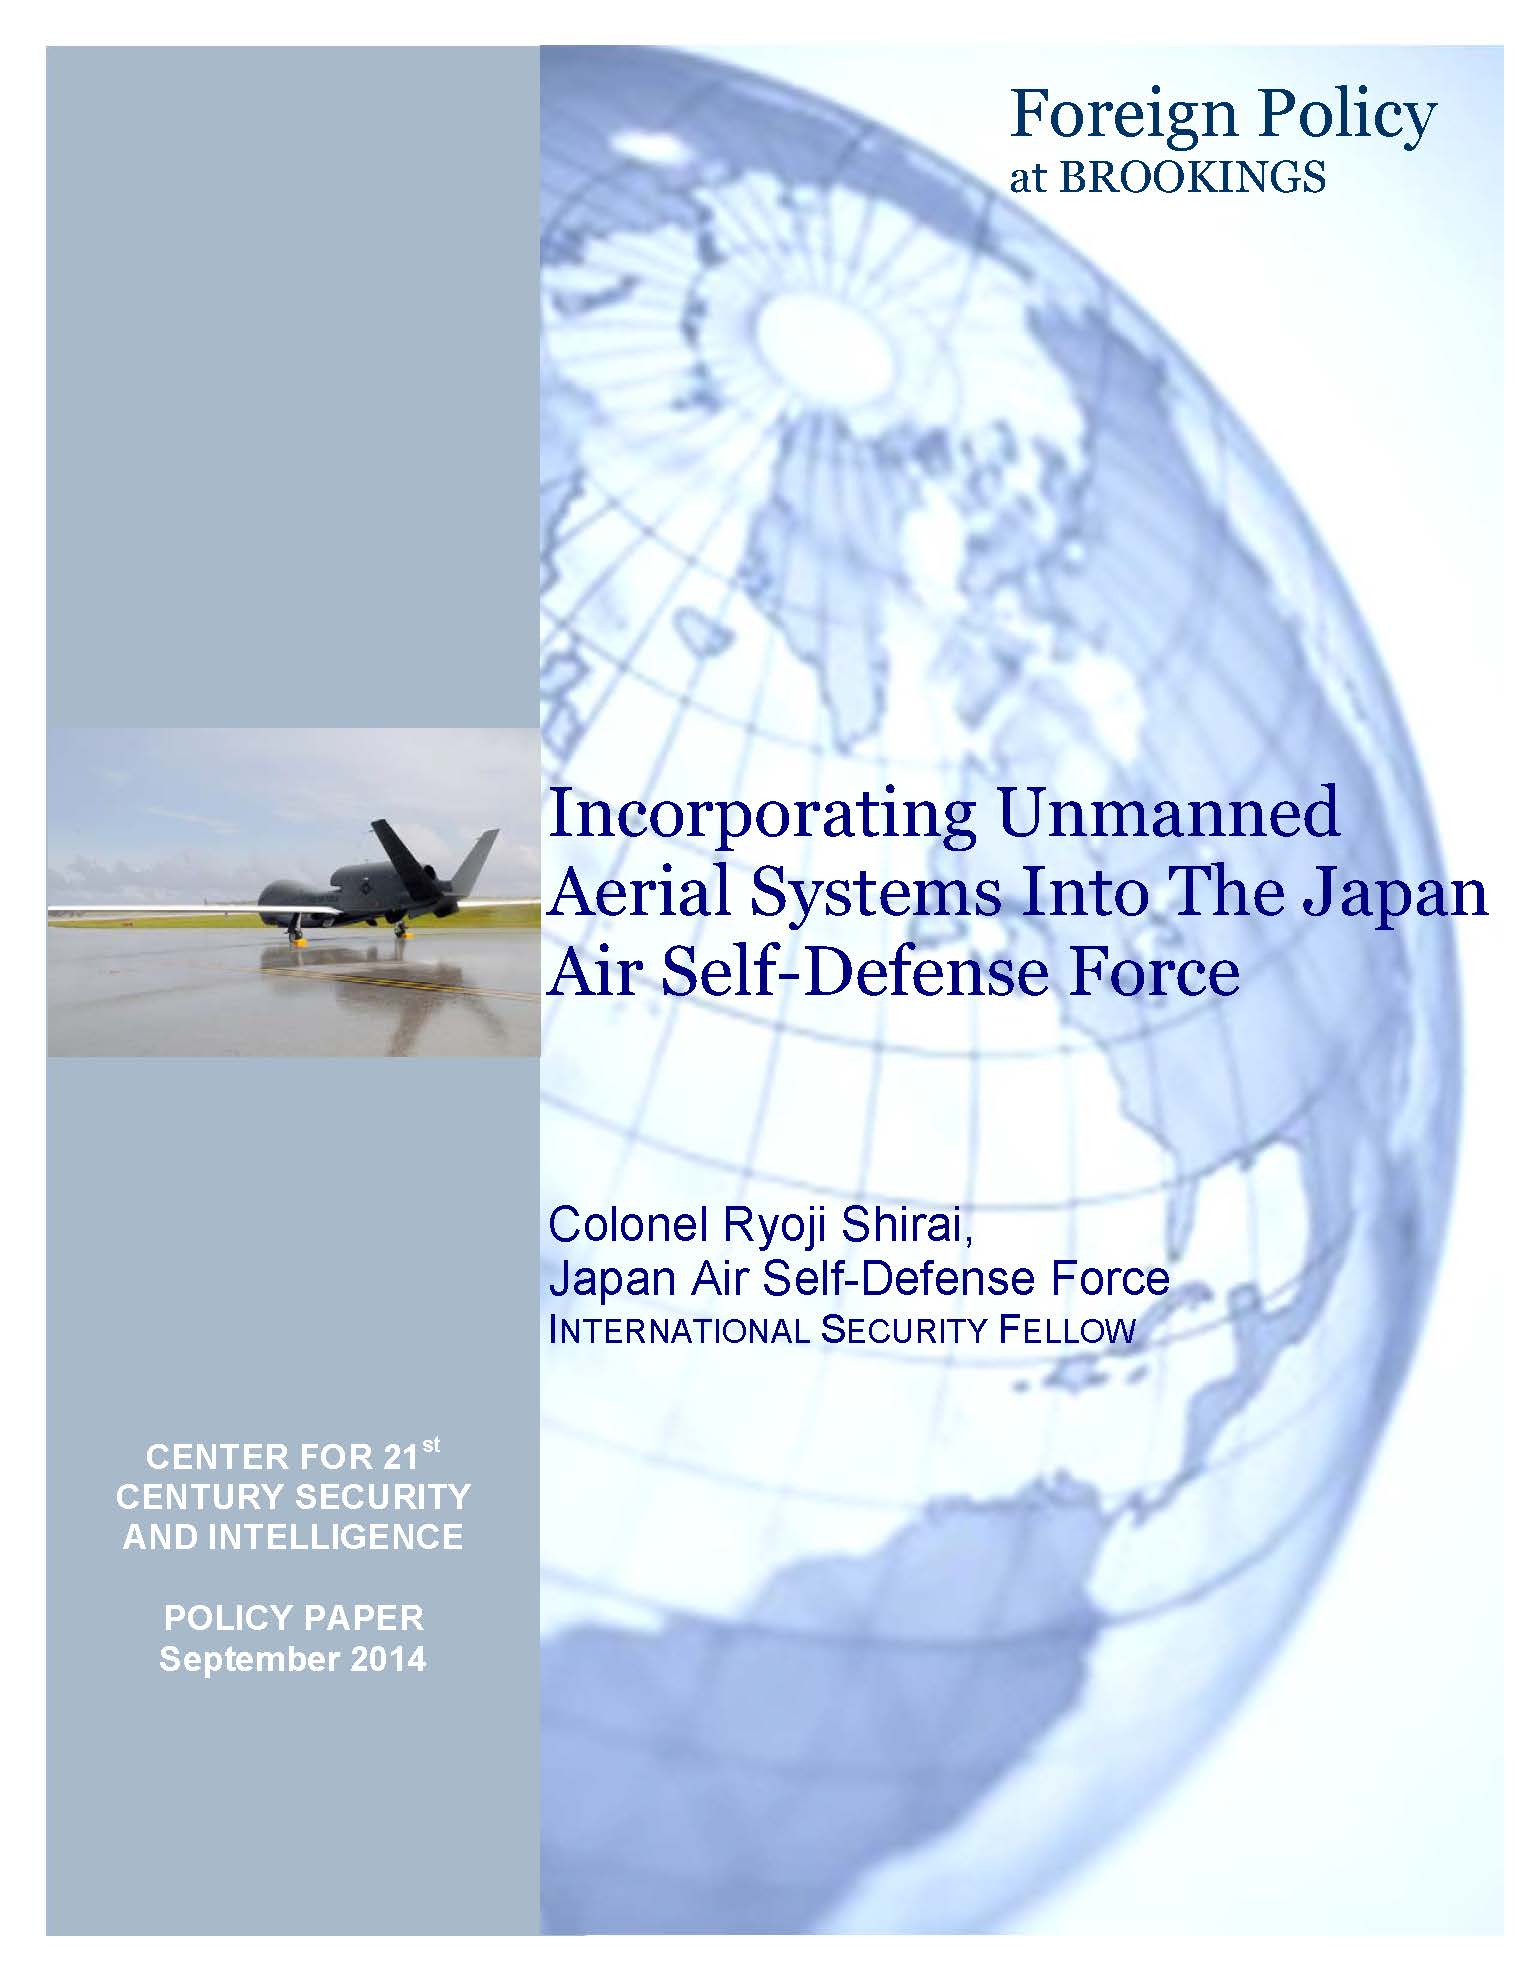 """is using unmanned aerial systems ethical? essay Essay about laws governing unmanned aircraft: a literature review 1245 words 